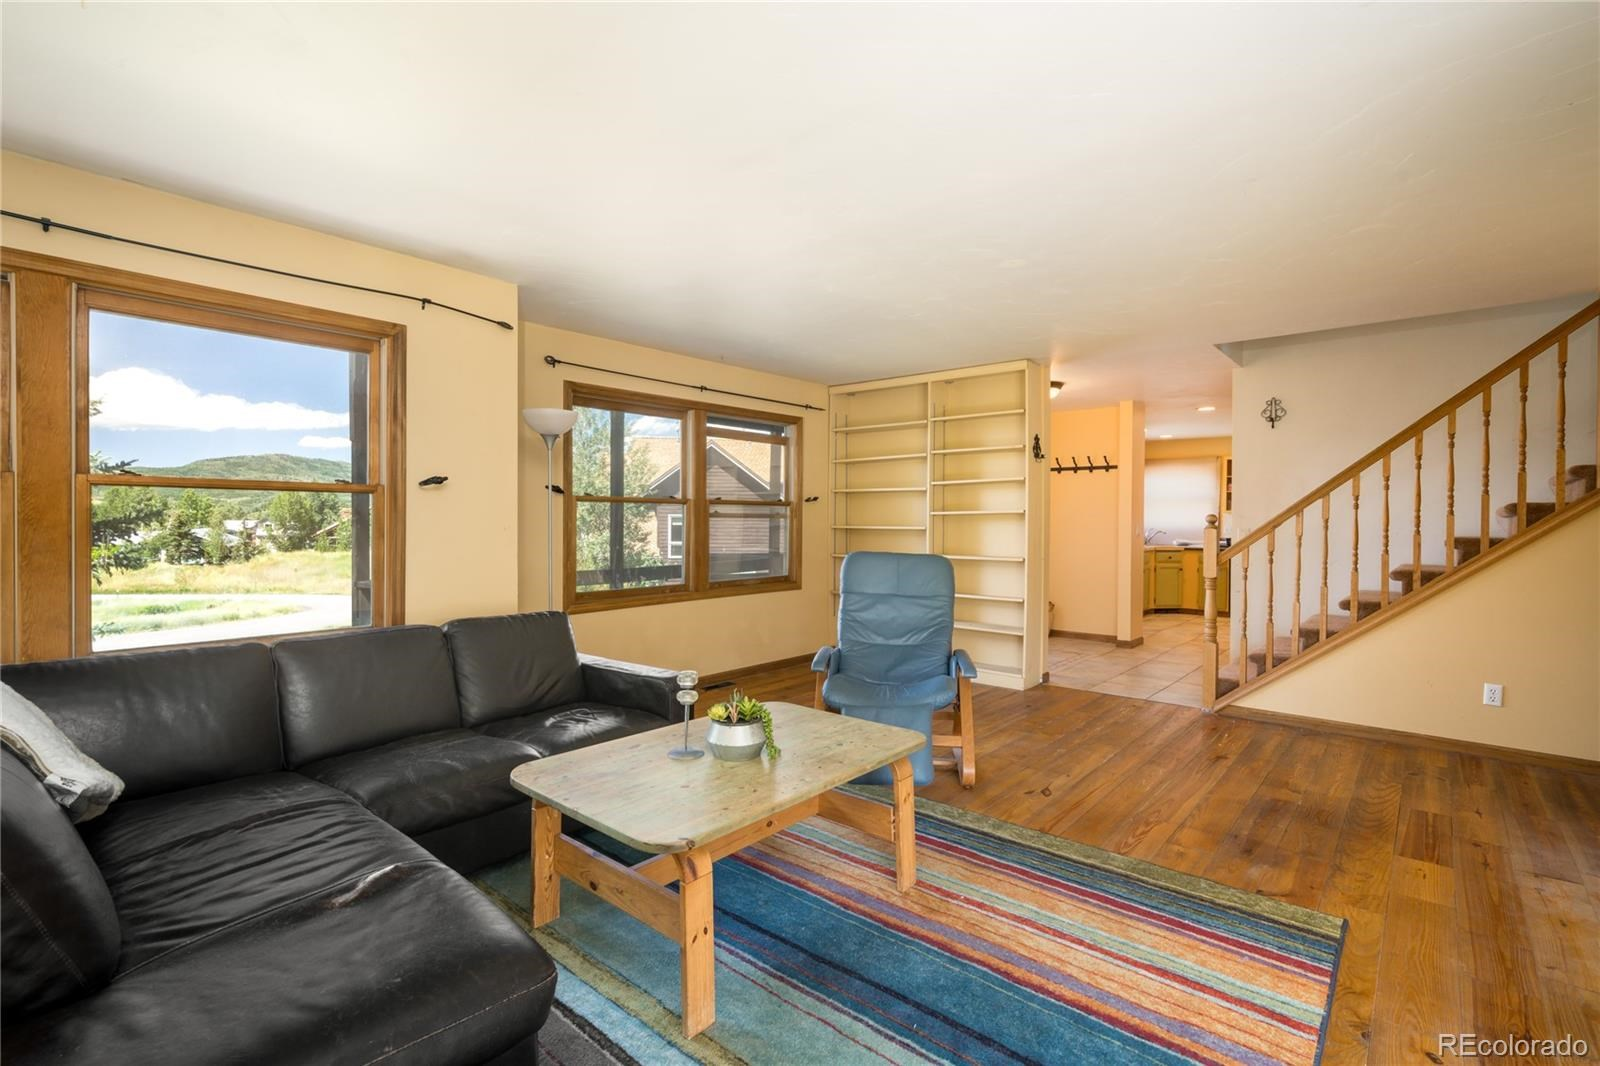 MLS# 3817598 - 6 - 404 Lupine Drive, Steamboat Springs, CO 80487